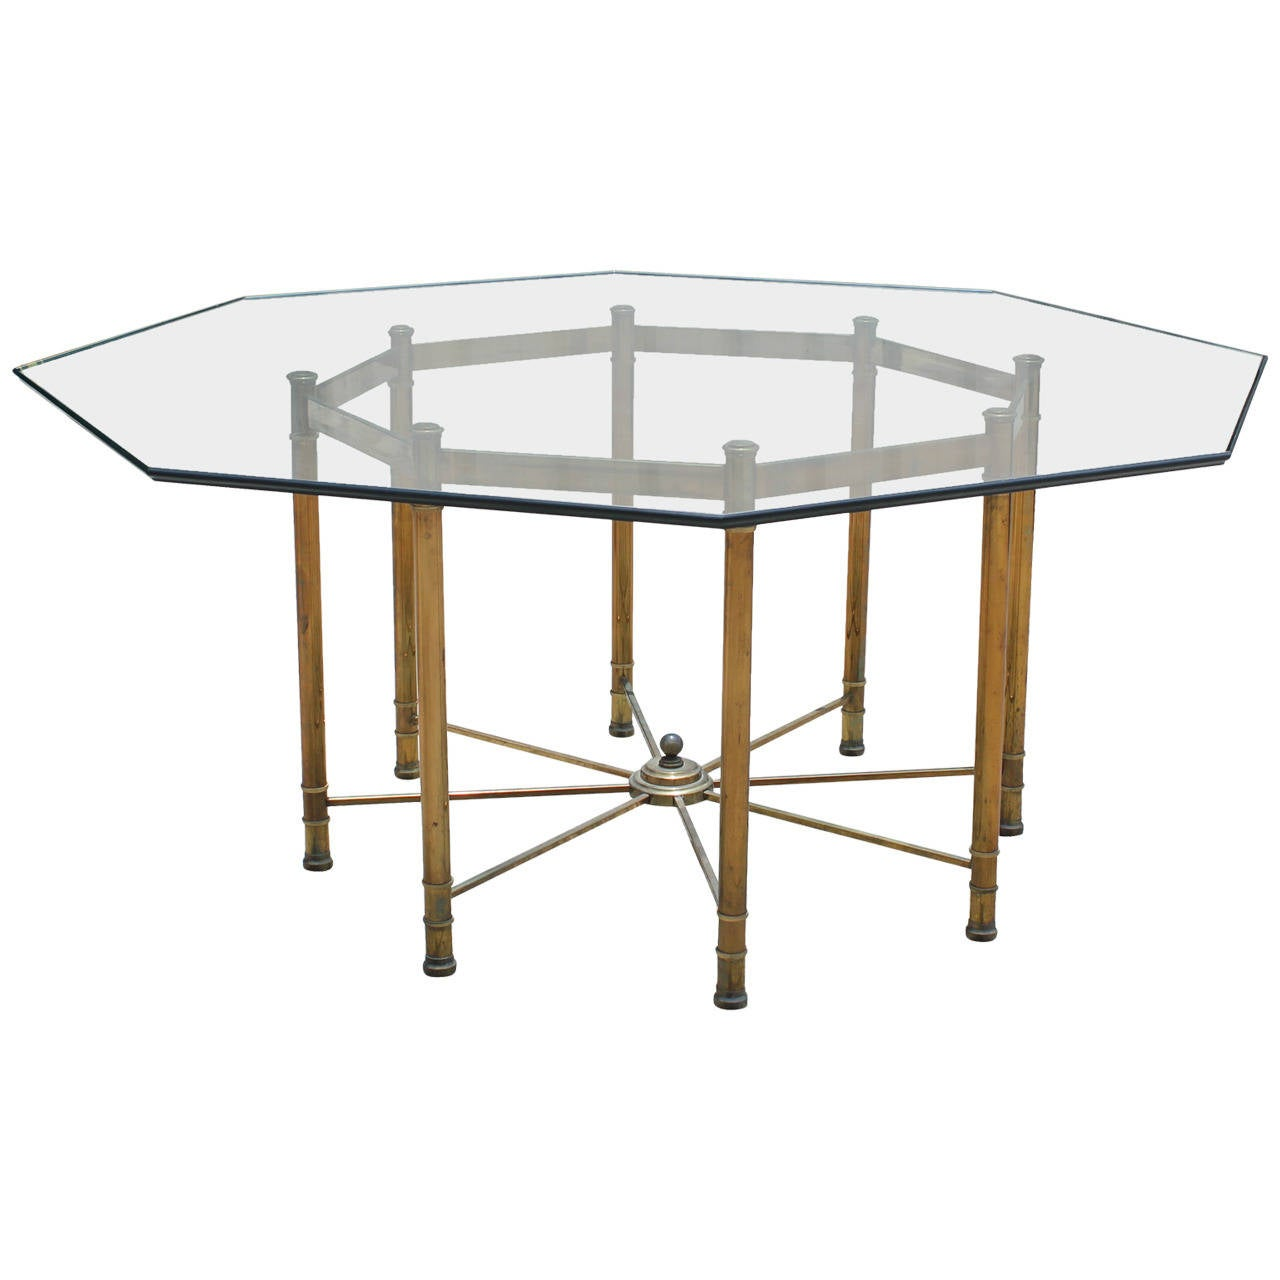 Large Brass Octagon Dining Table By Mastercraft At 1stdibs